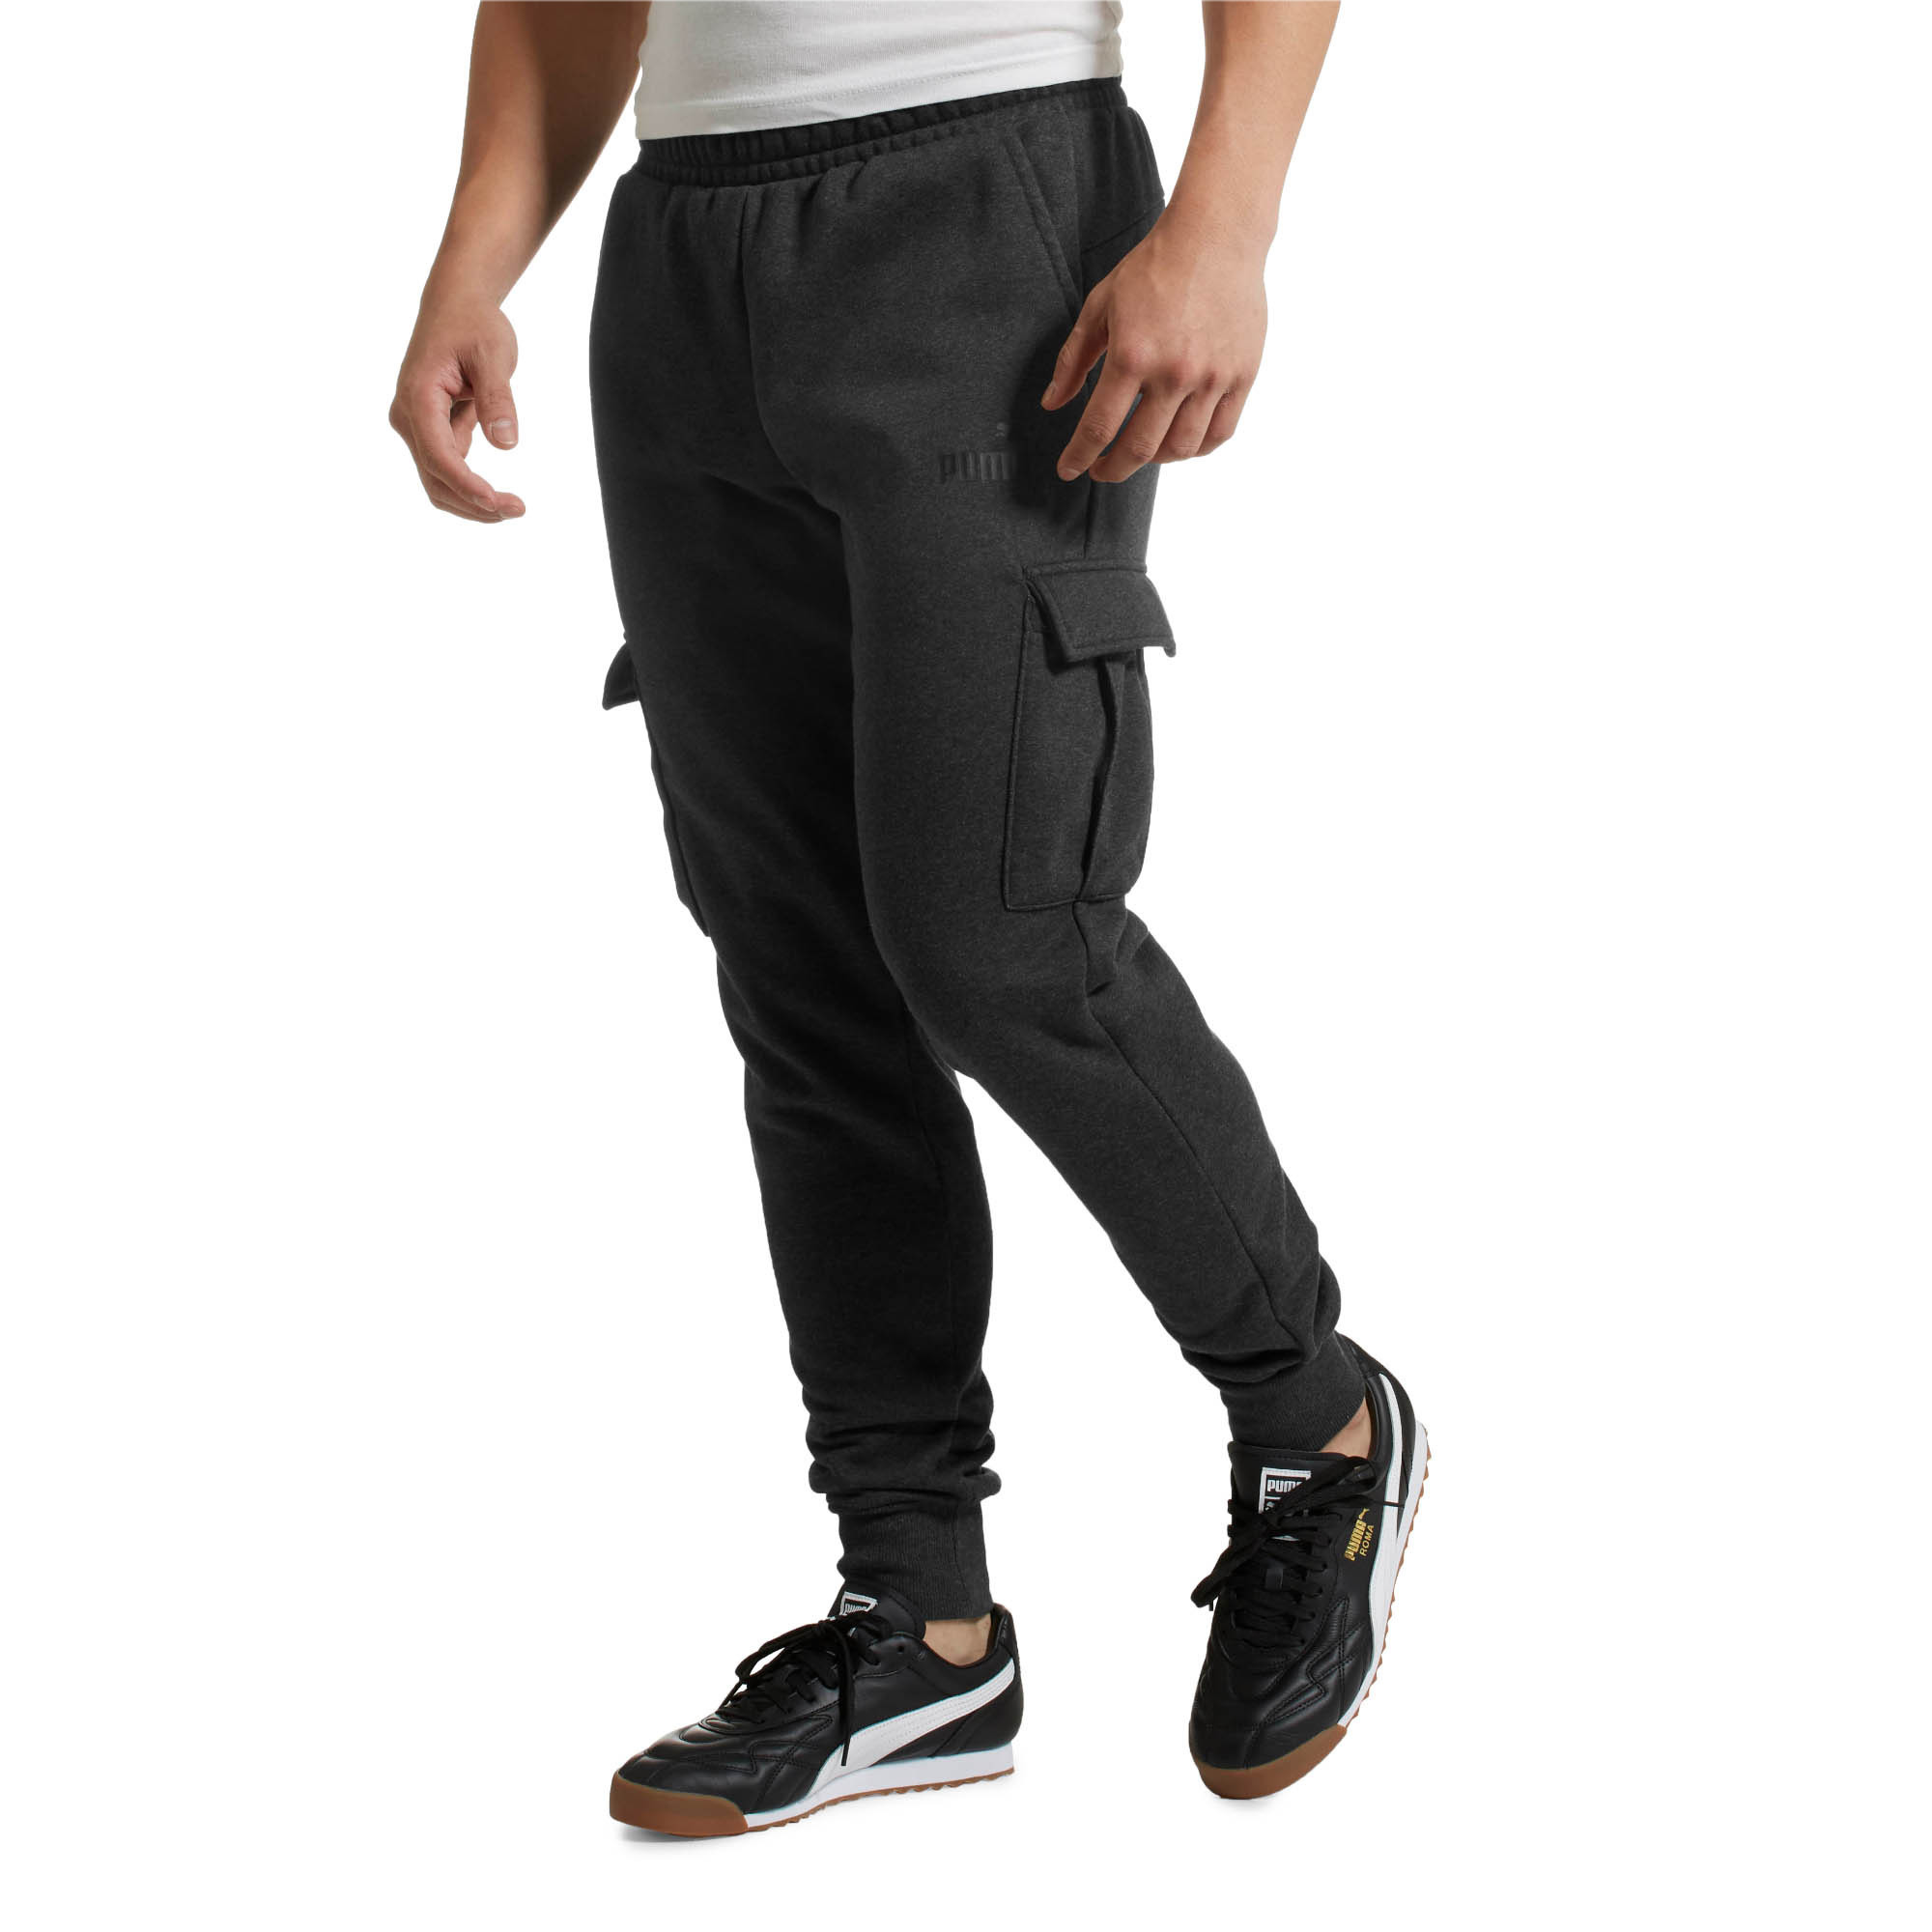 PUMA-Essentials-Men-039-s-Pocket-Pants-Men-Knitted-Pants-Basics thumbnail 13